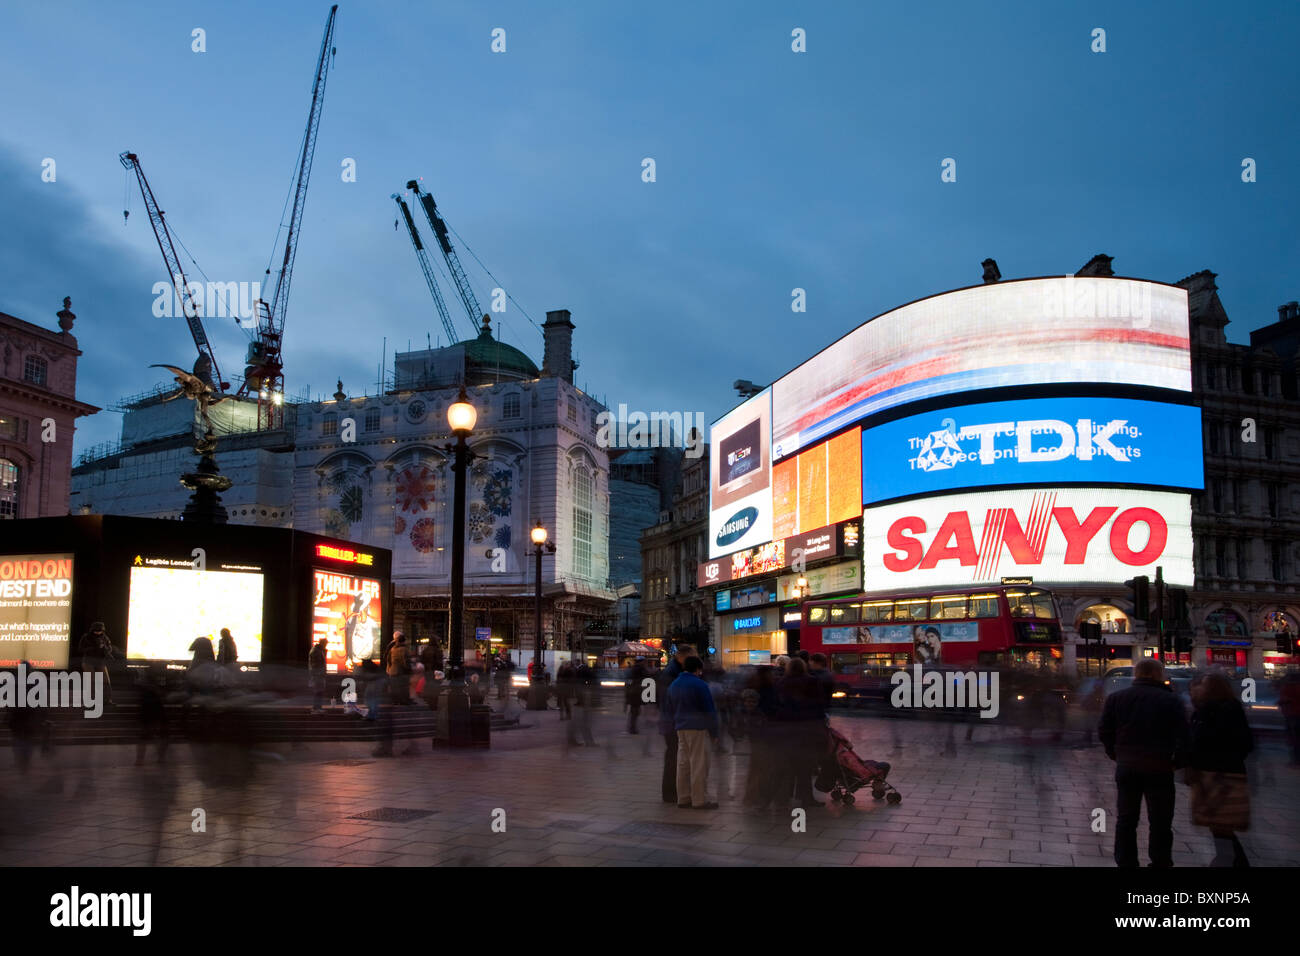 Piccadilly Circus at dusk, London, Uk - Stock Image